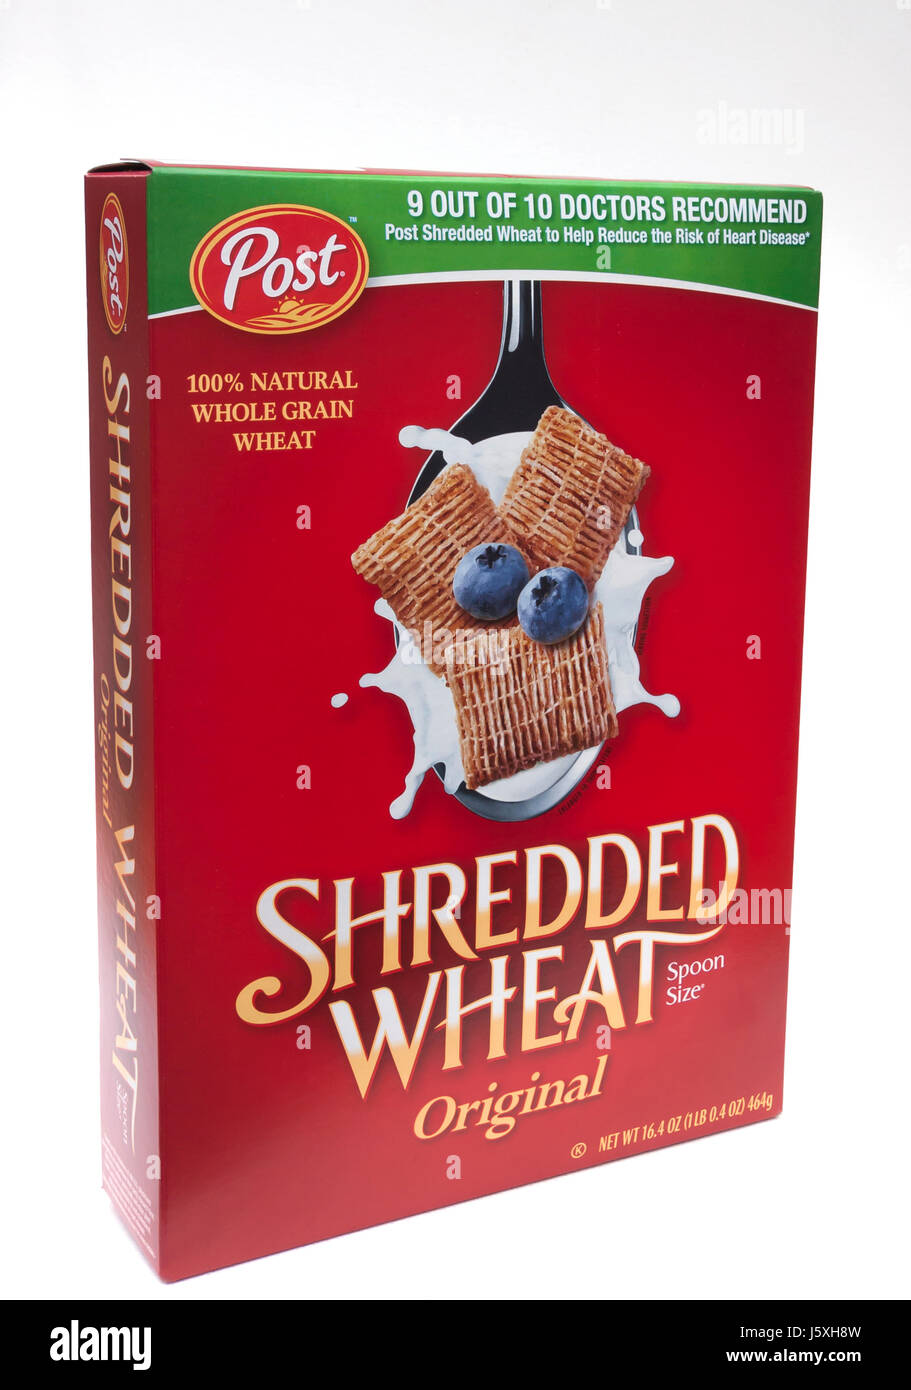 Shredded Wheat Original Cereal box. - Stock Image